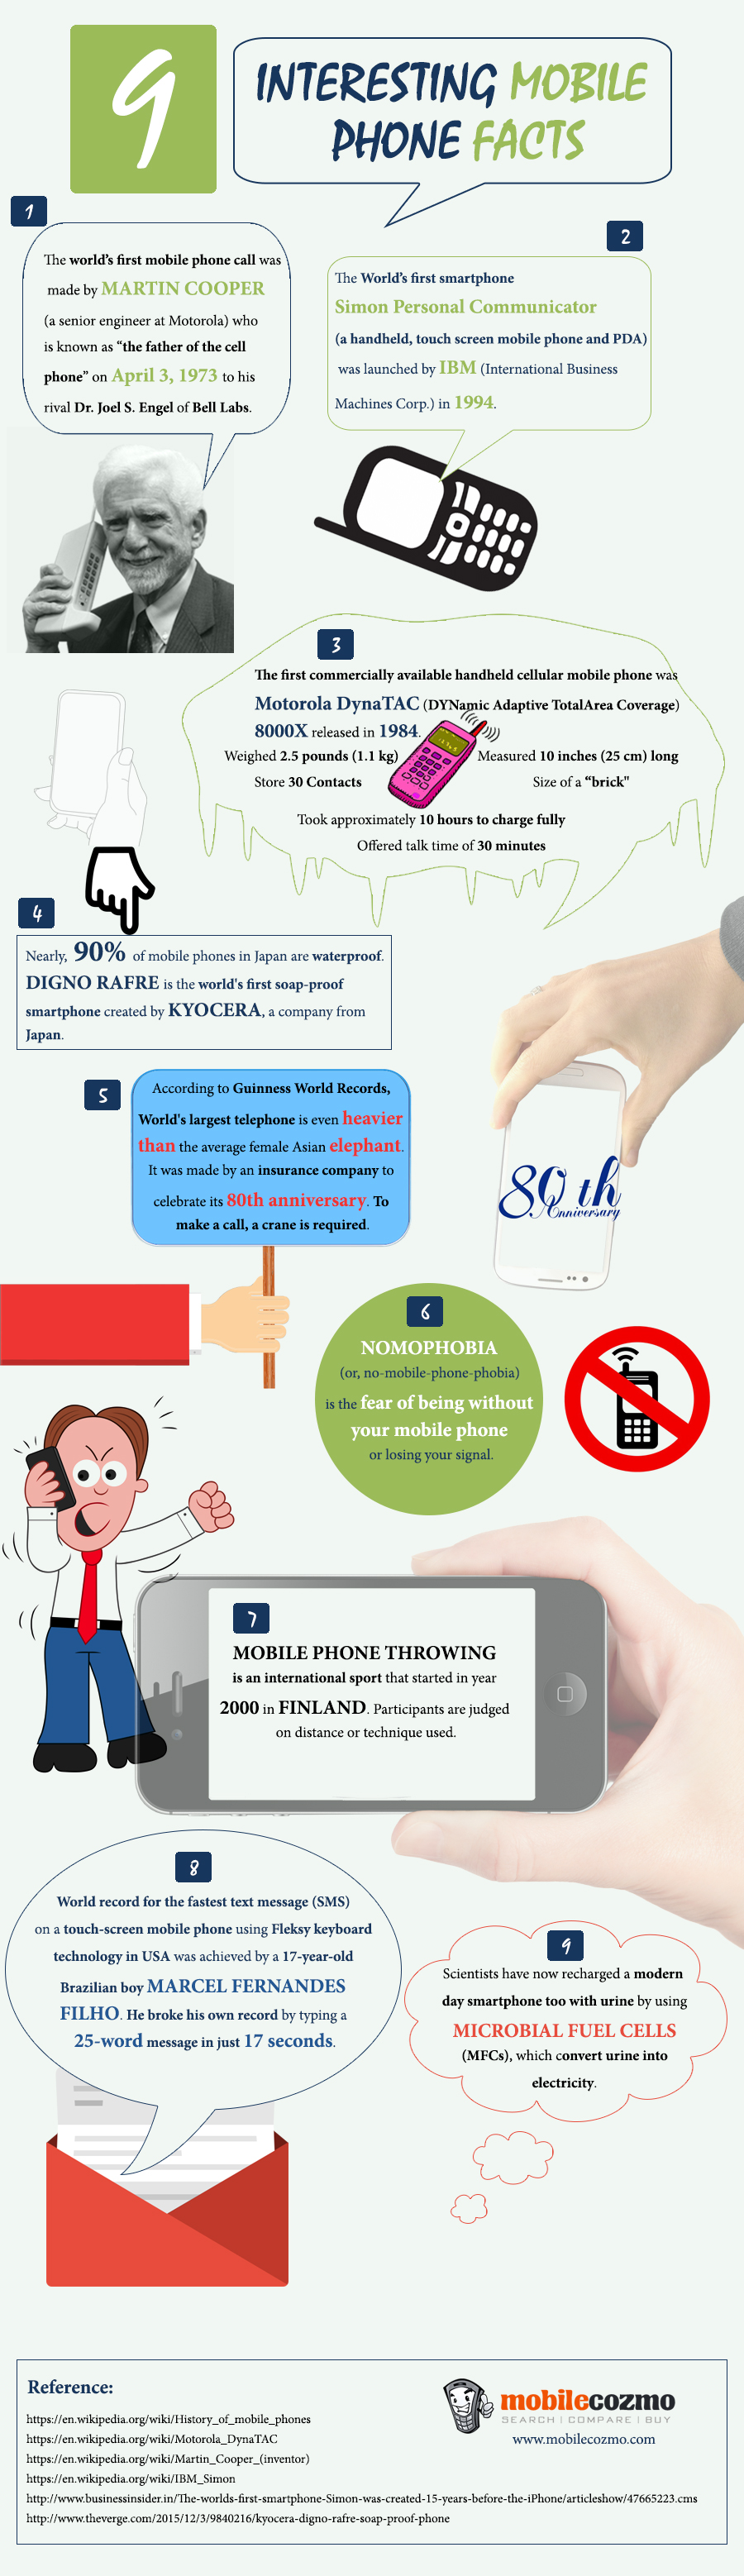 9-interesting-mobile-phone-facts